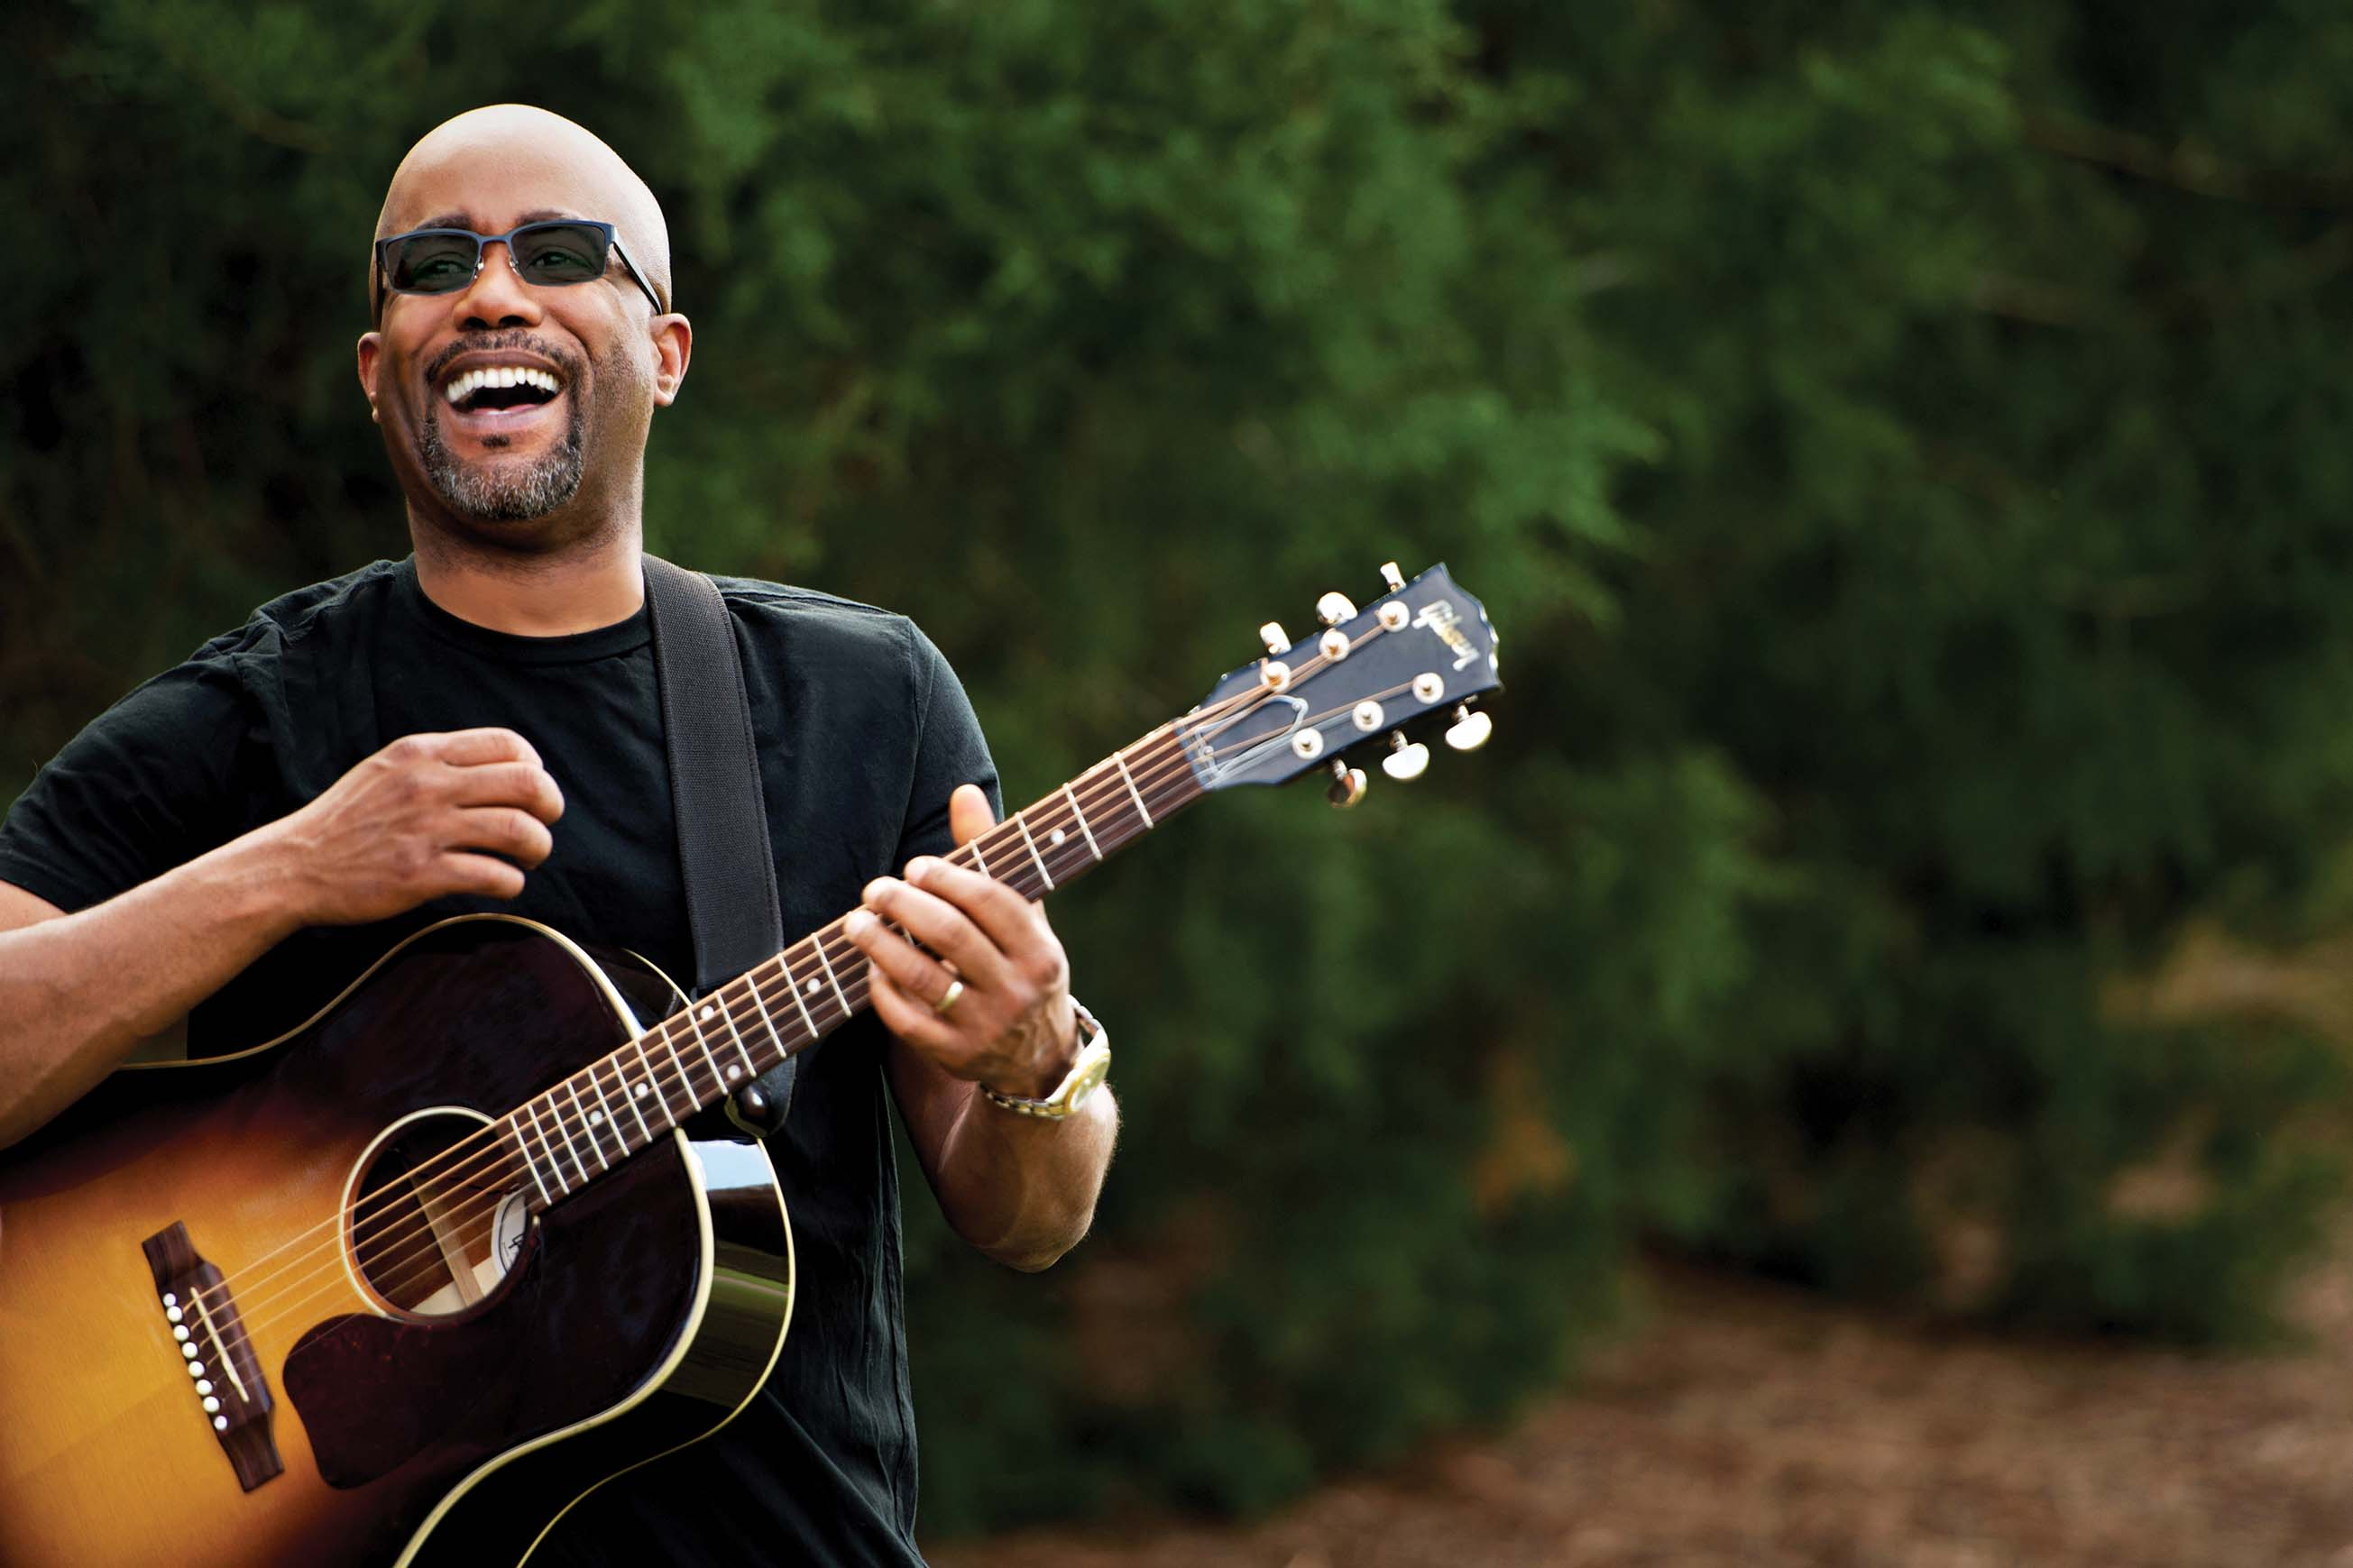 http://www.multivu.com/players/English/7194751-transitions-optical-onesight-darius-rucker-make-dreams-come-true/gallery/image/84c639e4-8268-4c90-9197-491ee01dd911.HR.jpg